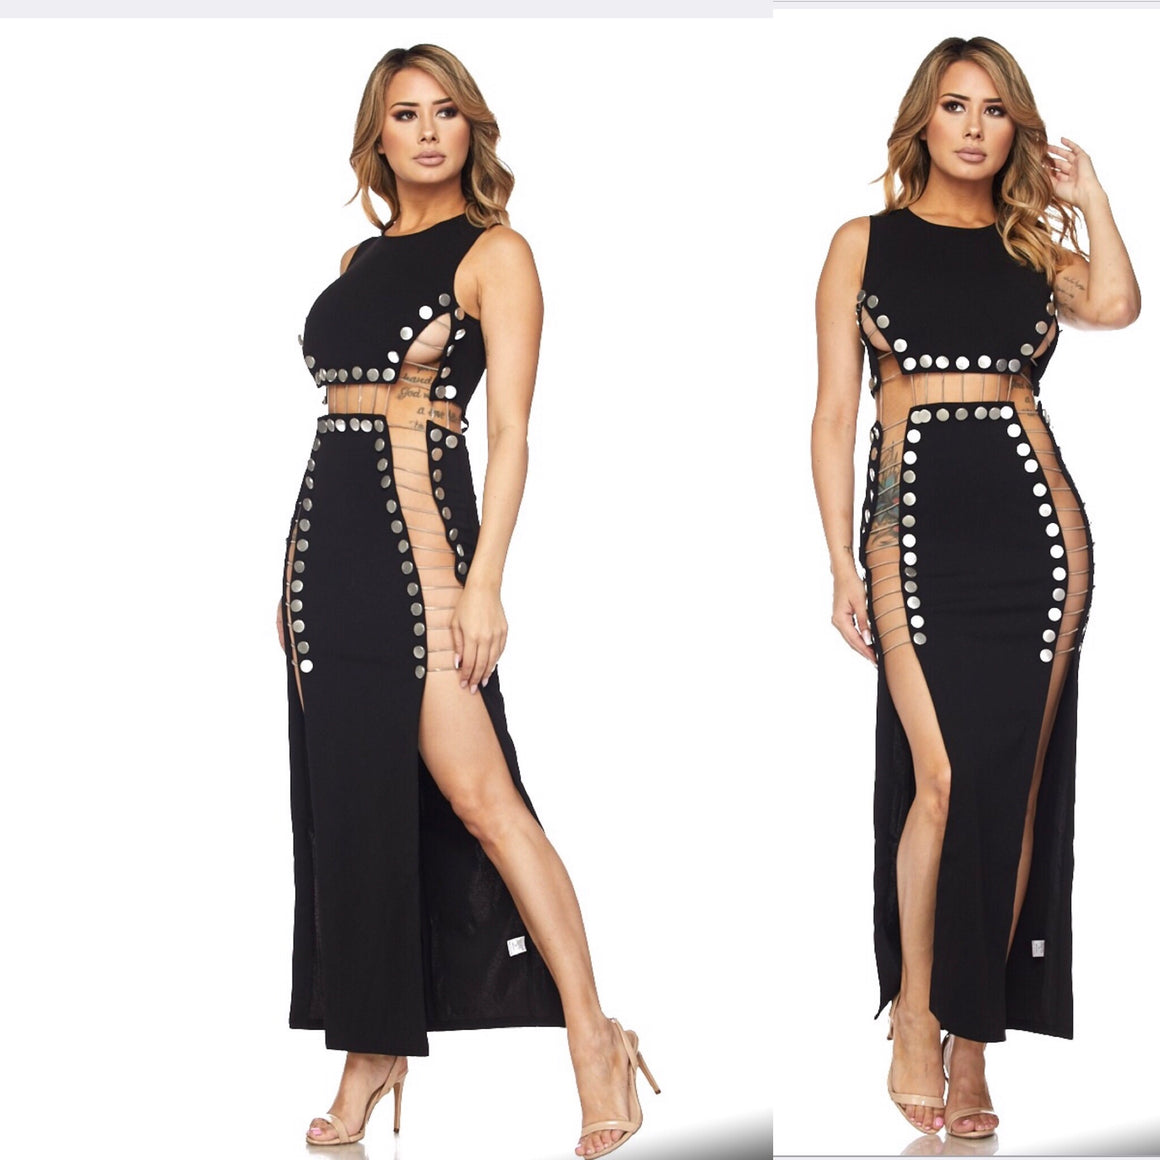 Chain Gang dress